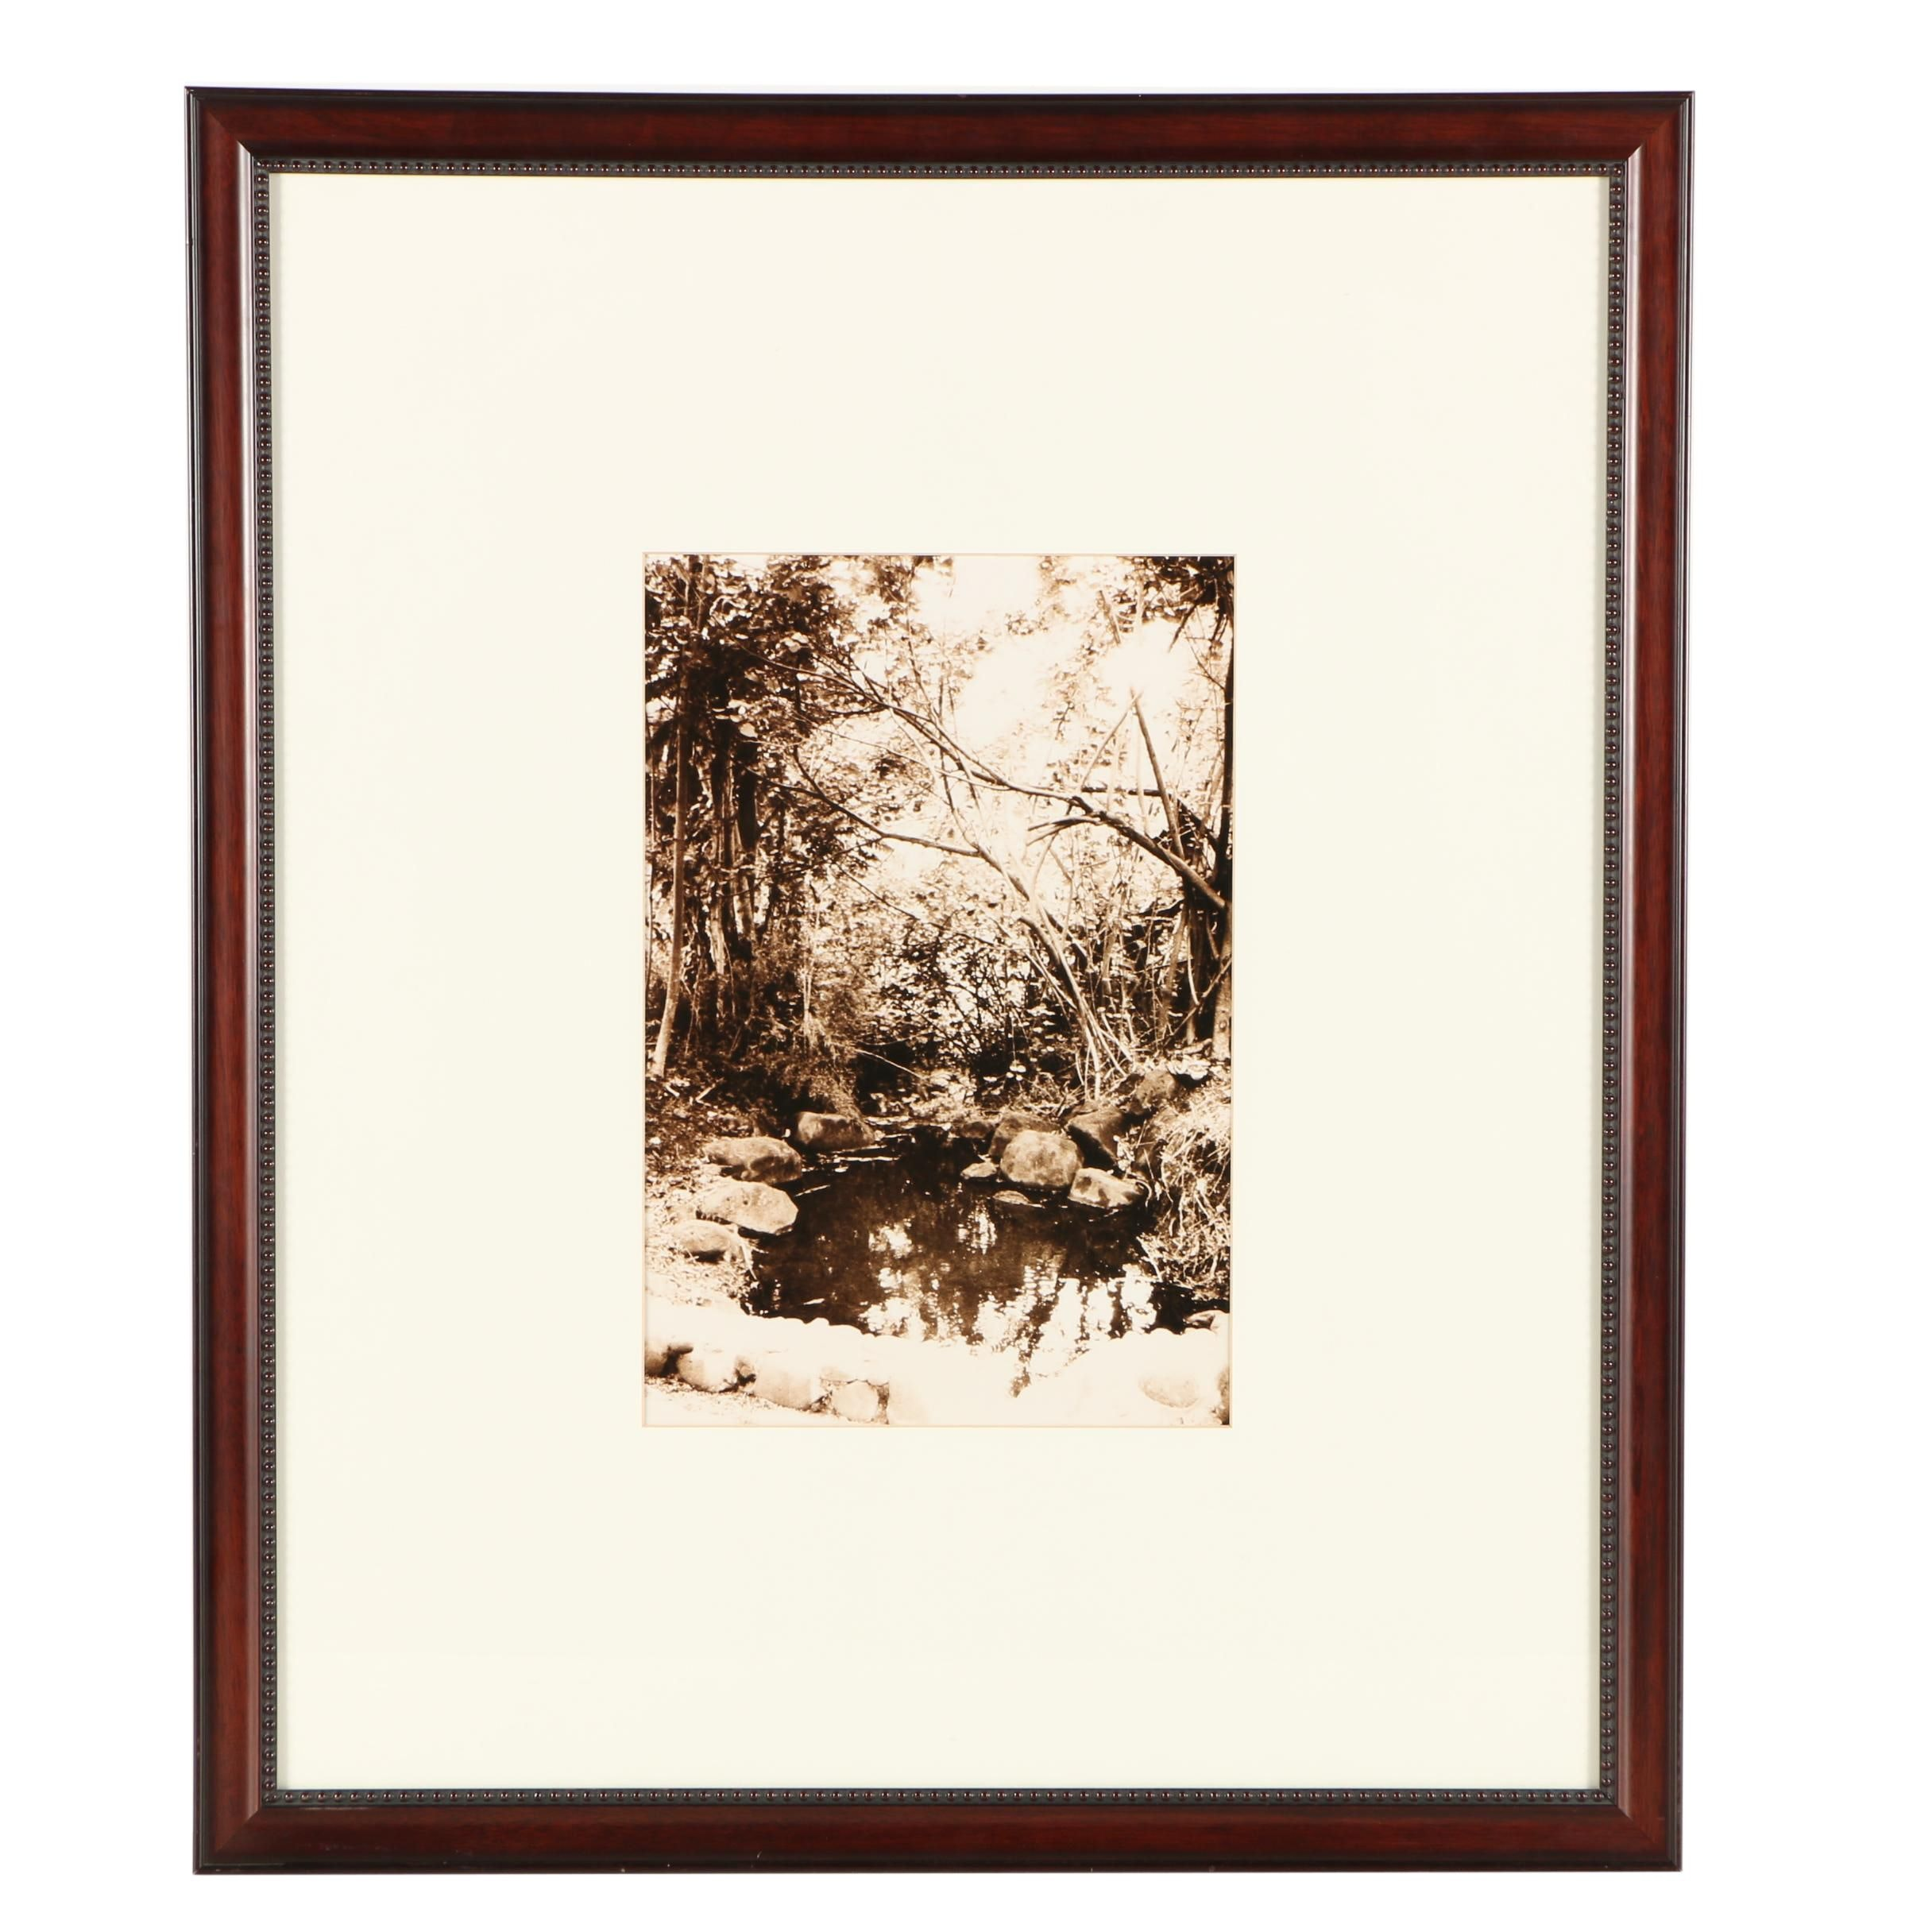 Giclee Print After Photograph of a Sepia Tone Garden Landscape